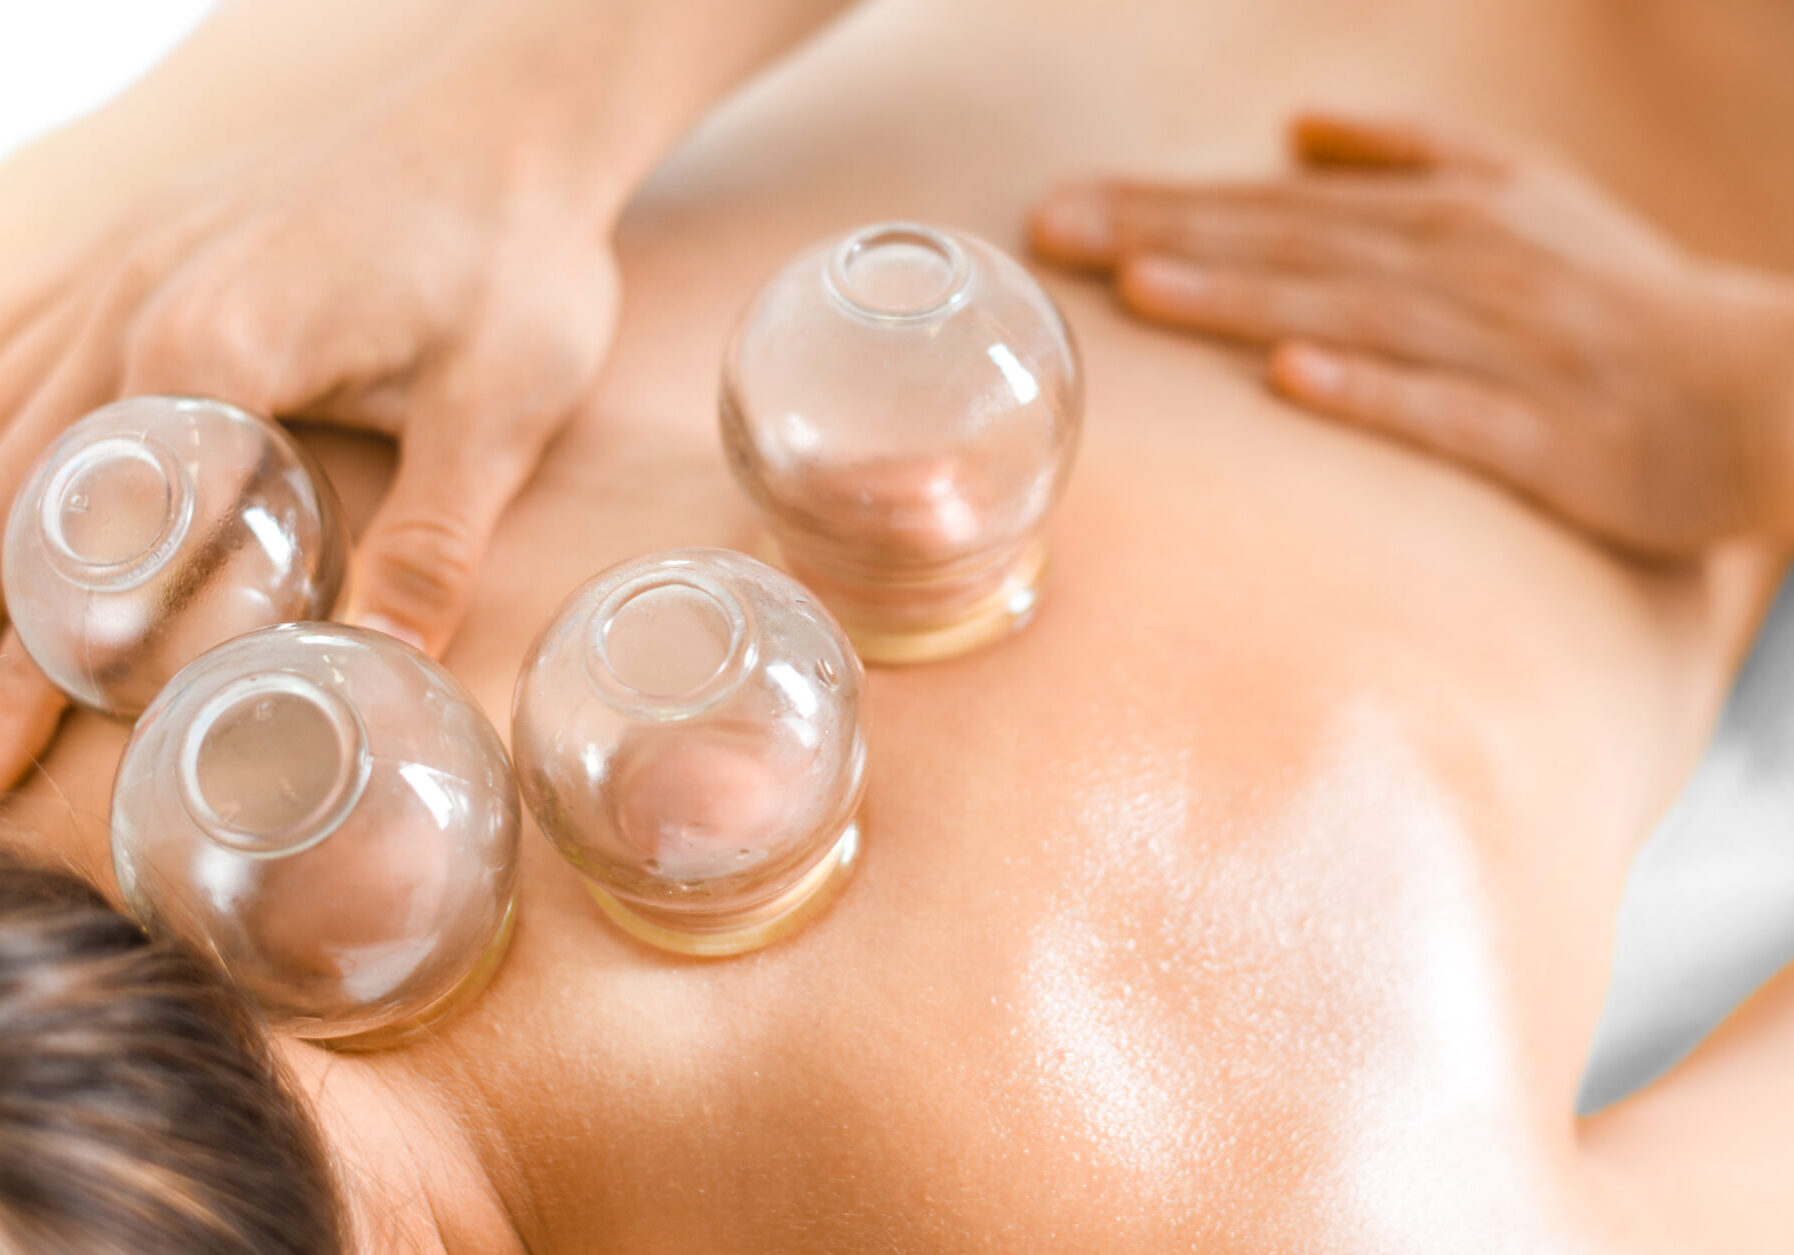 Detail,Of,A,Woman,Therapist,Hands,Giving,Cupping,Treatment,On